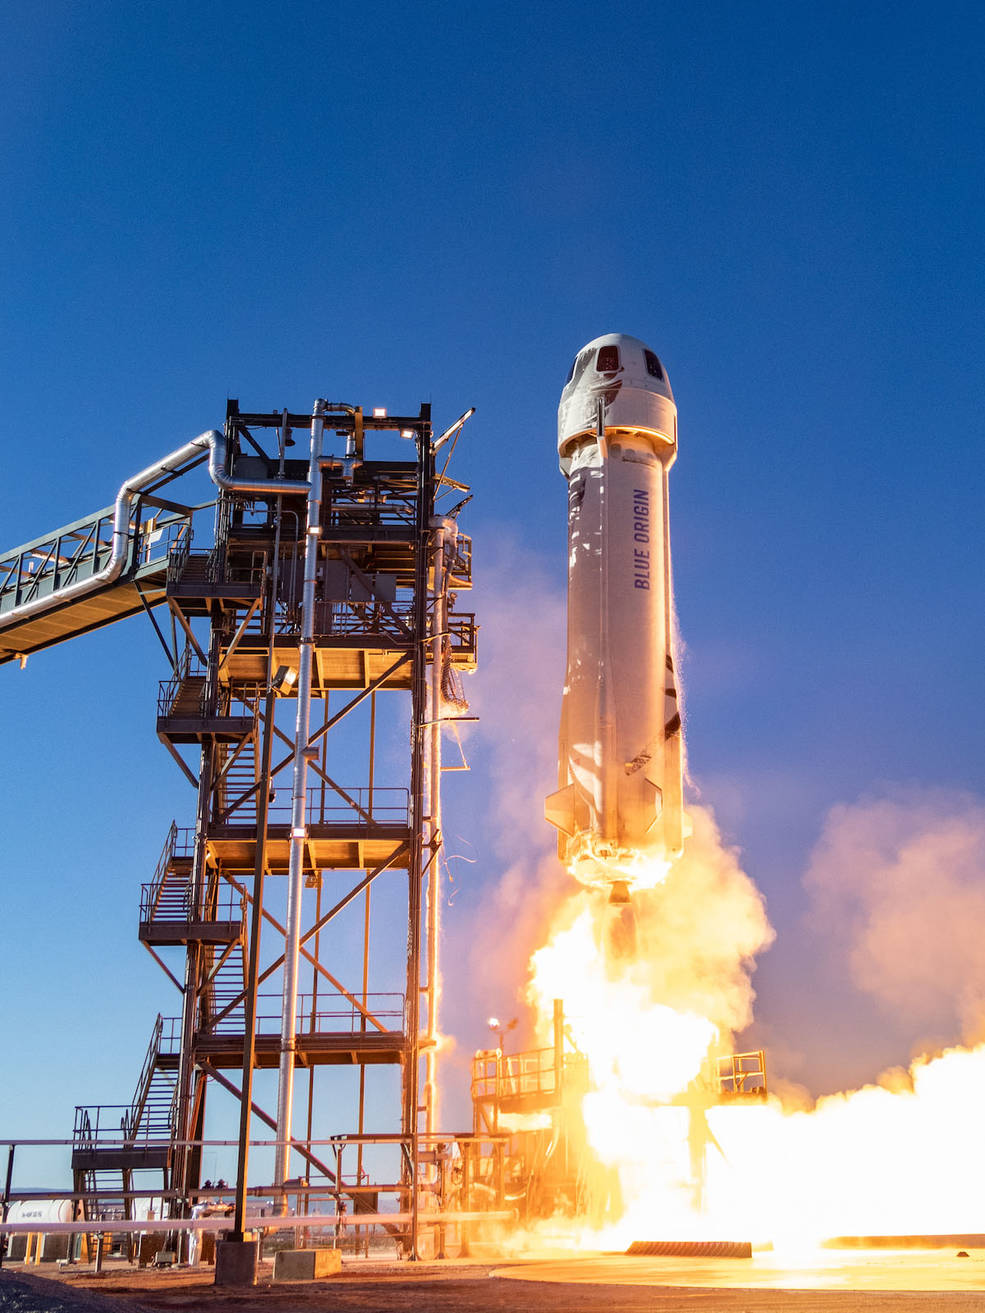 Blue Origin's New Shepard rocket system lifts off from the company's launchpad in West Texas in January 2019.